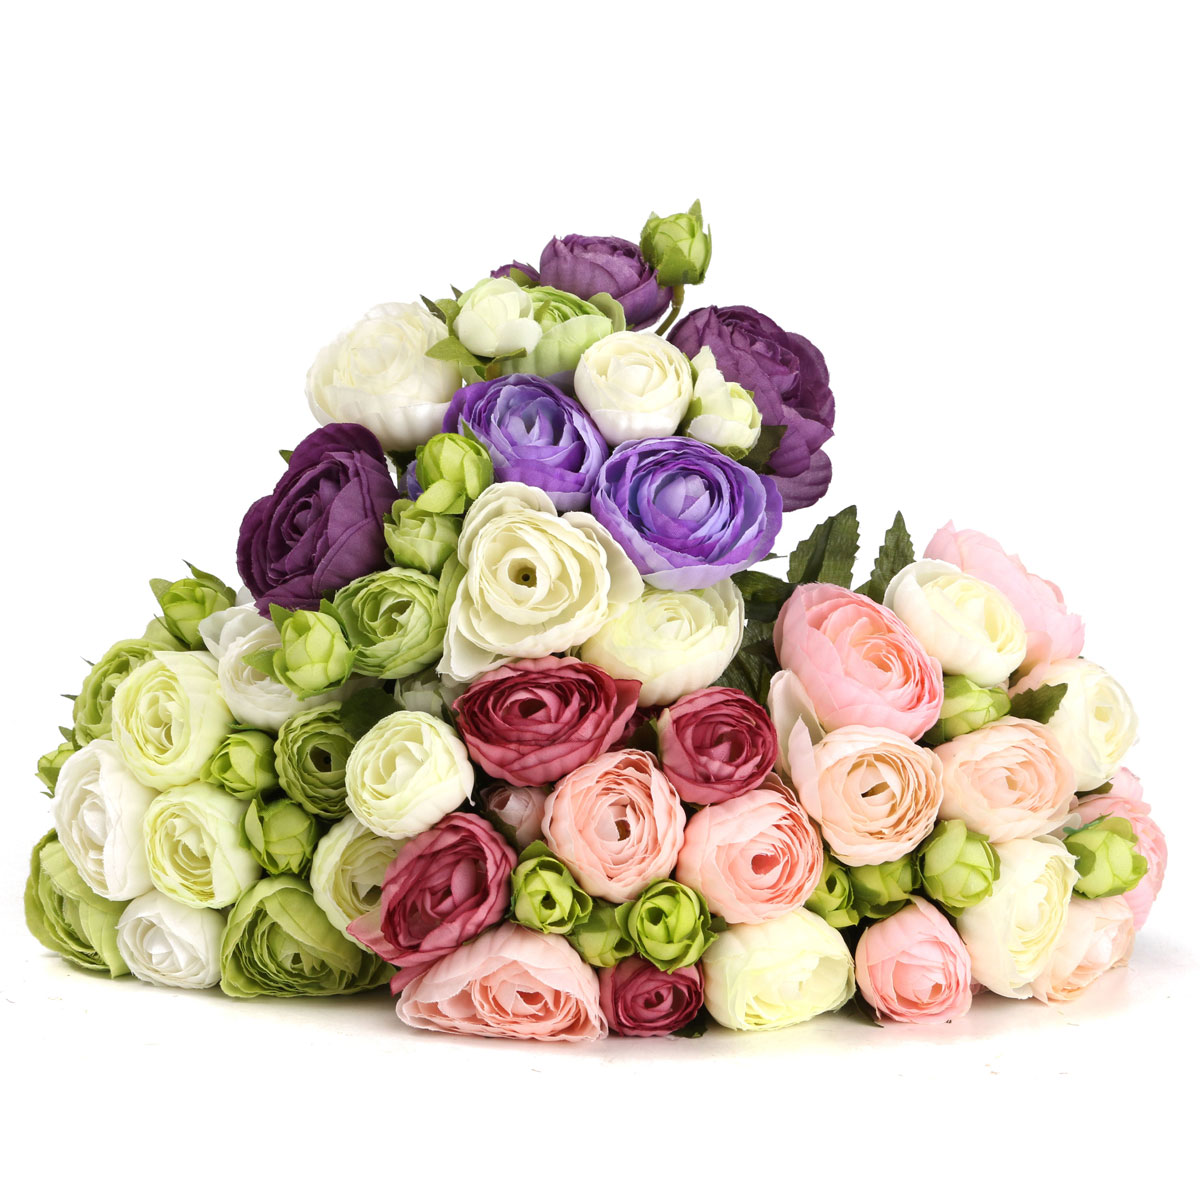 10 Heads Artificial Silk Flower Camellia Wedding Bouquet Party Home Decoration